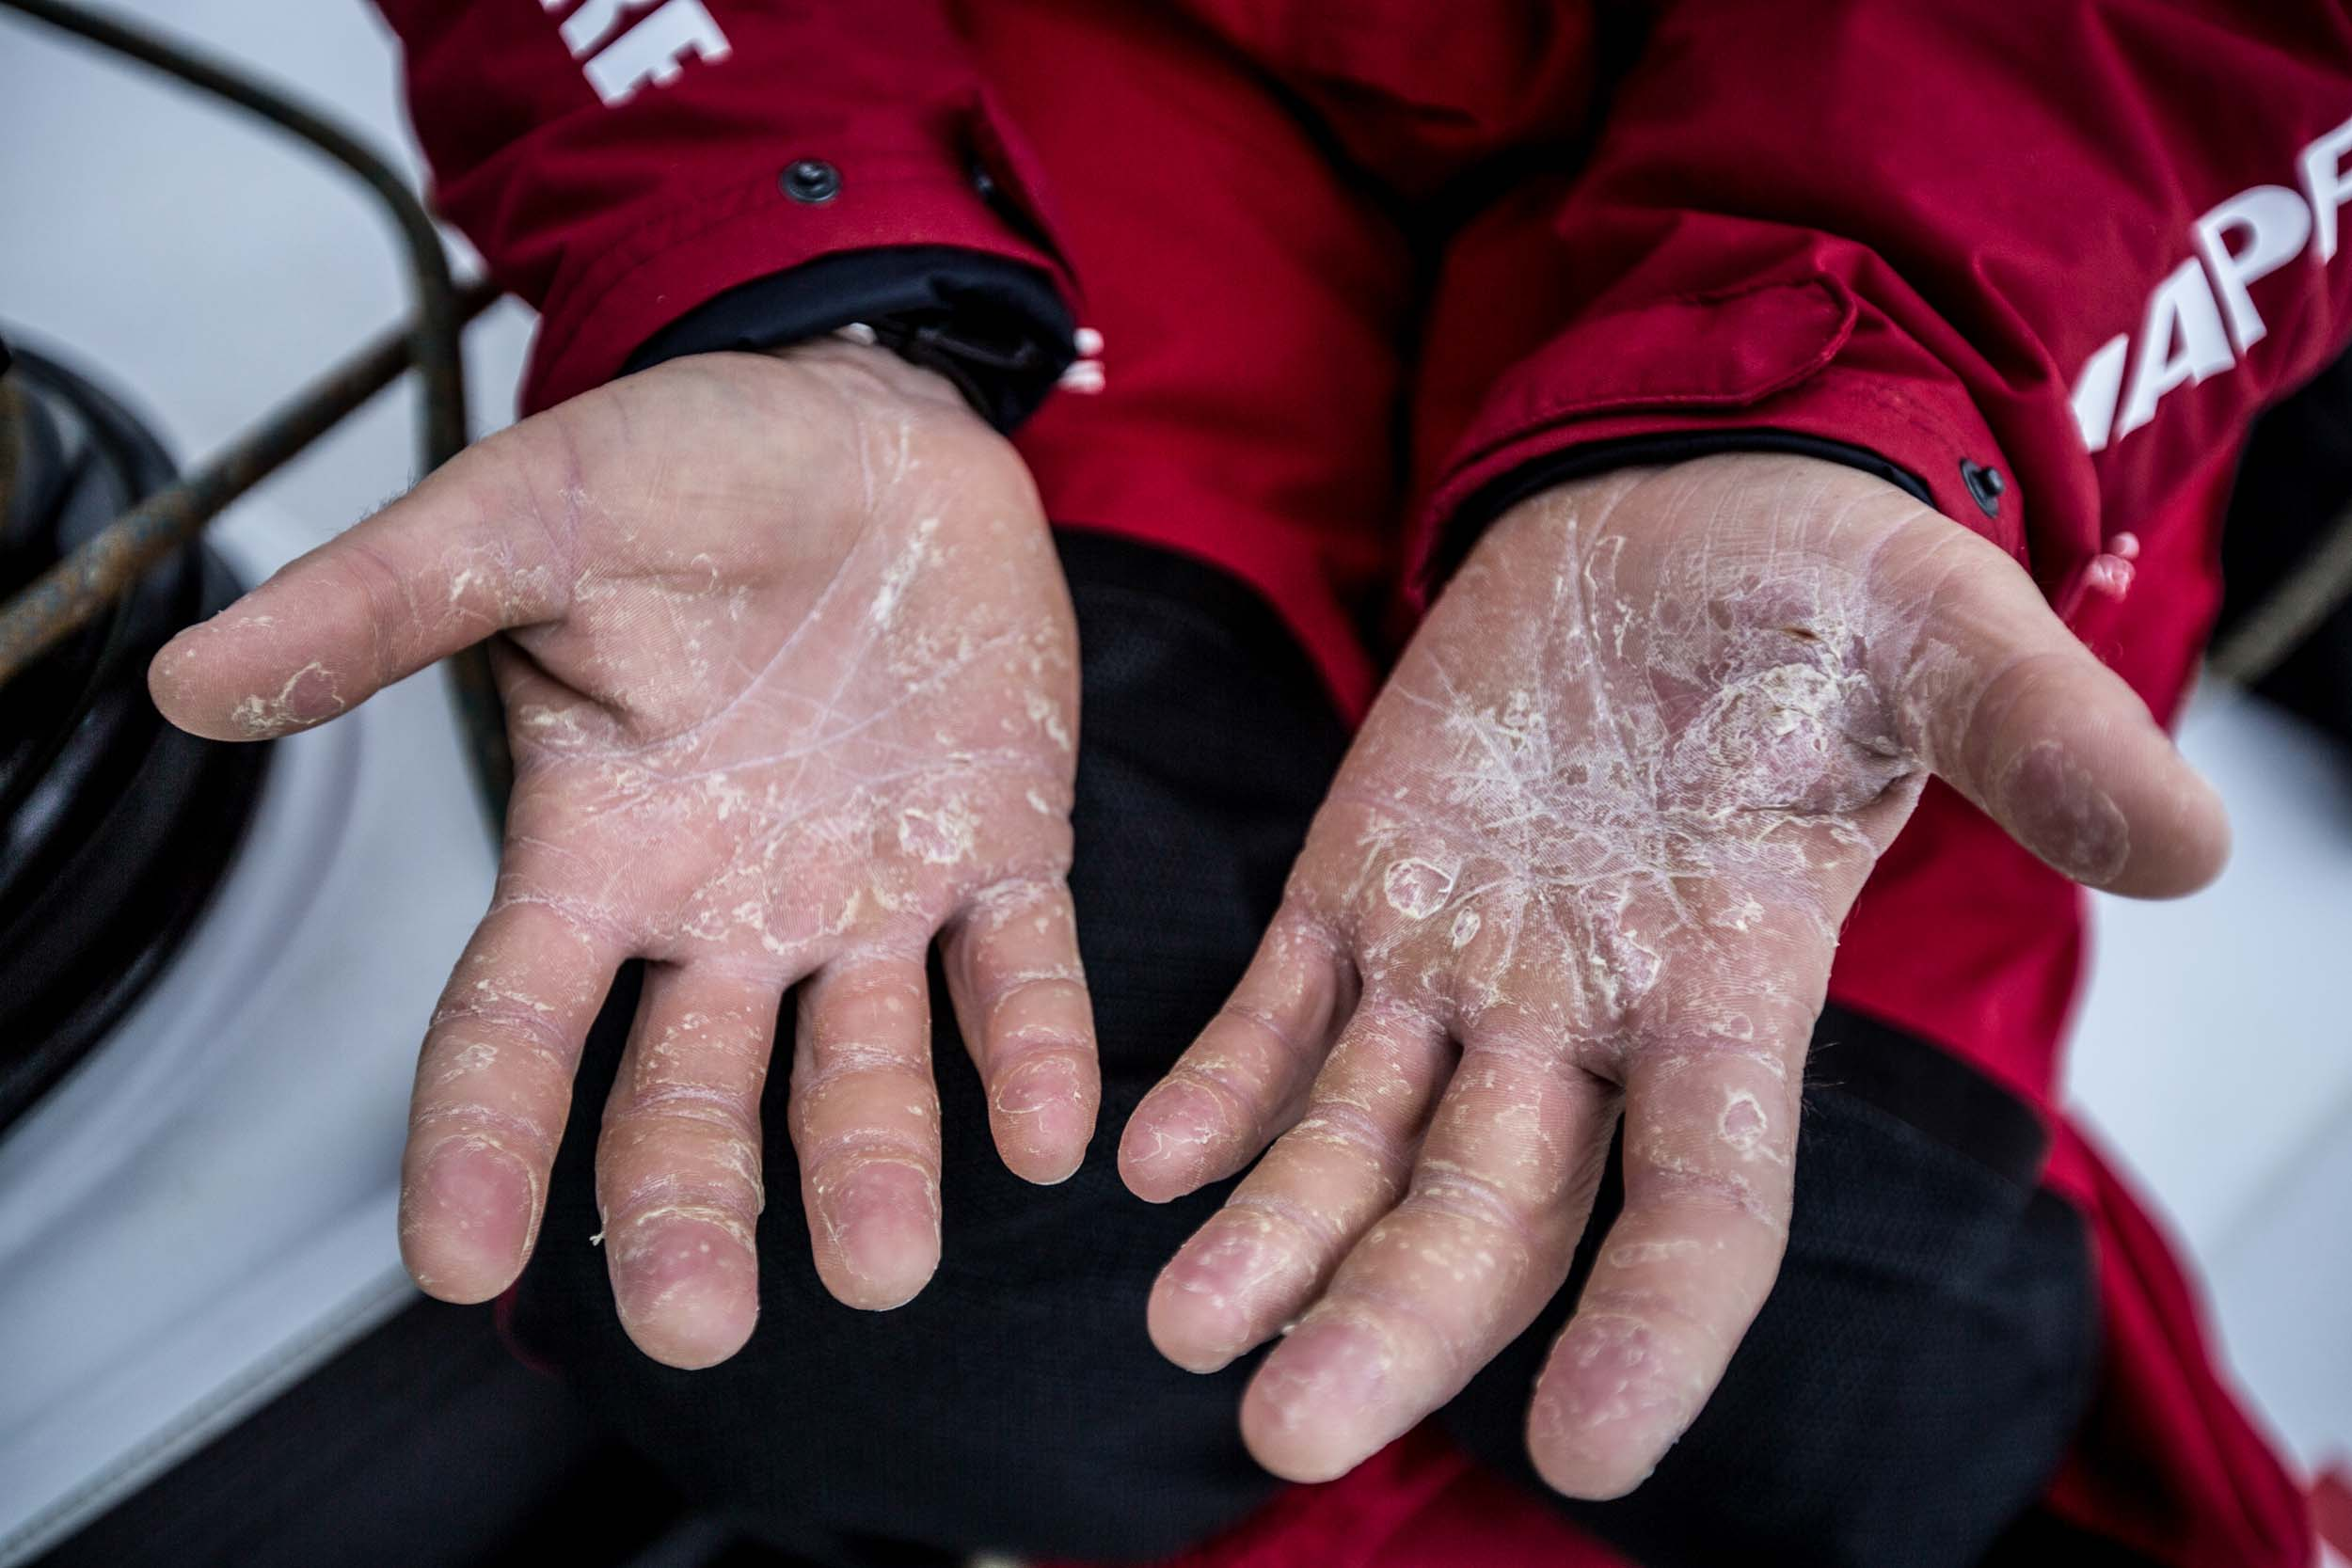 After 27 days at sea. Xabi's hands